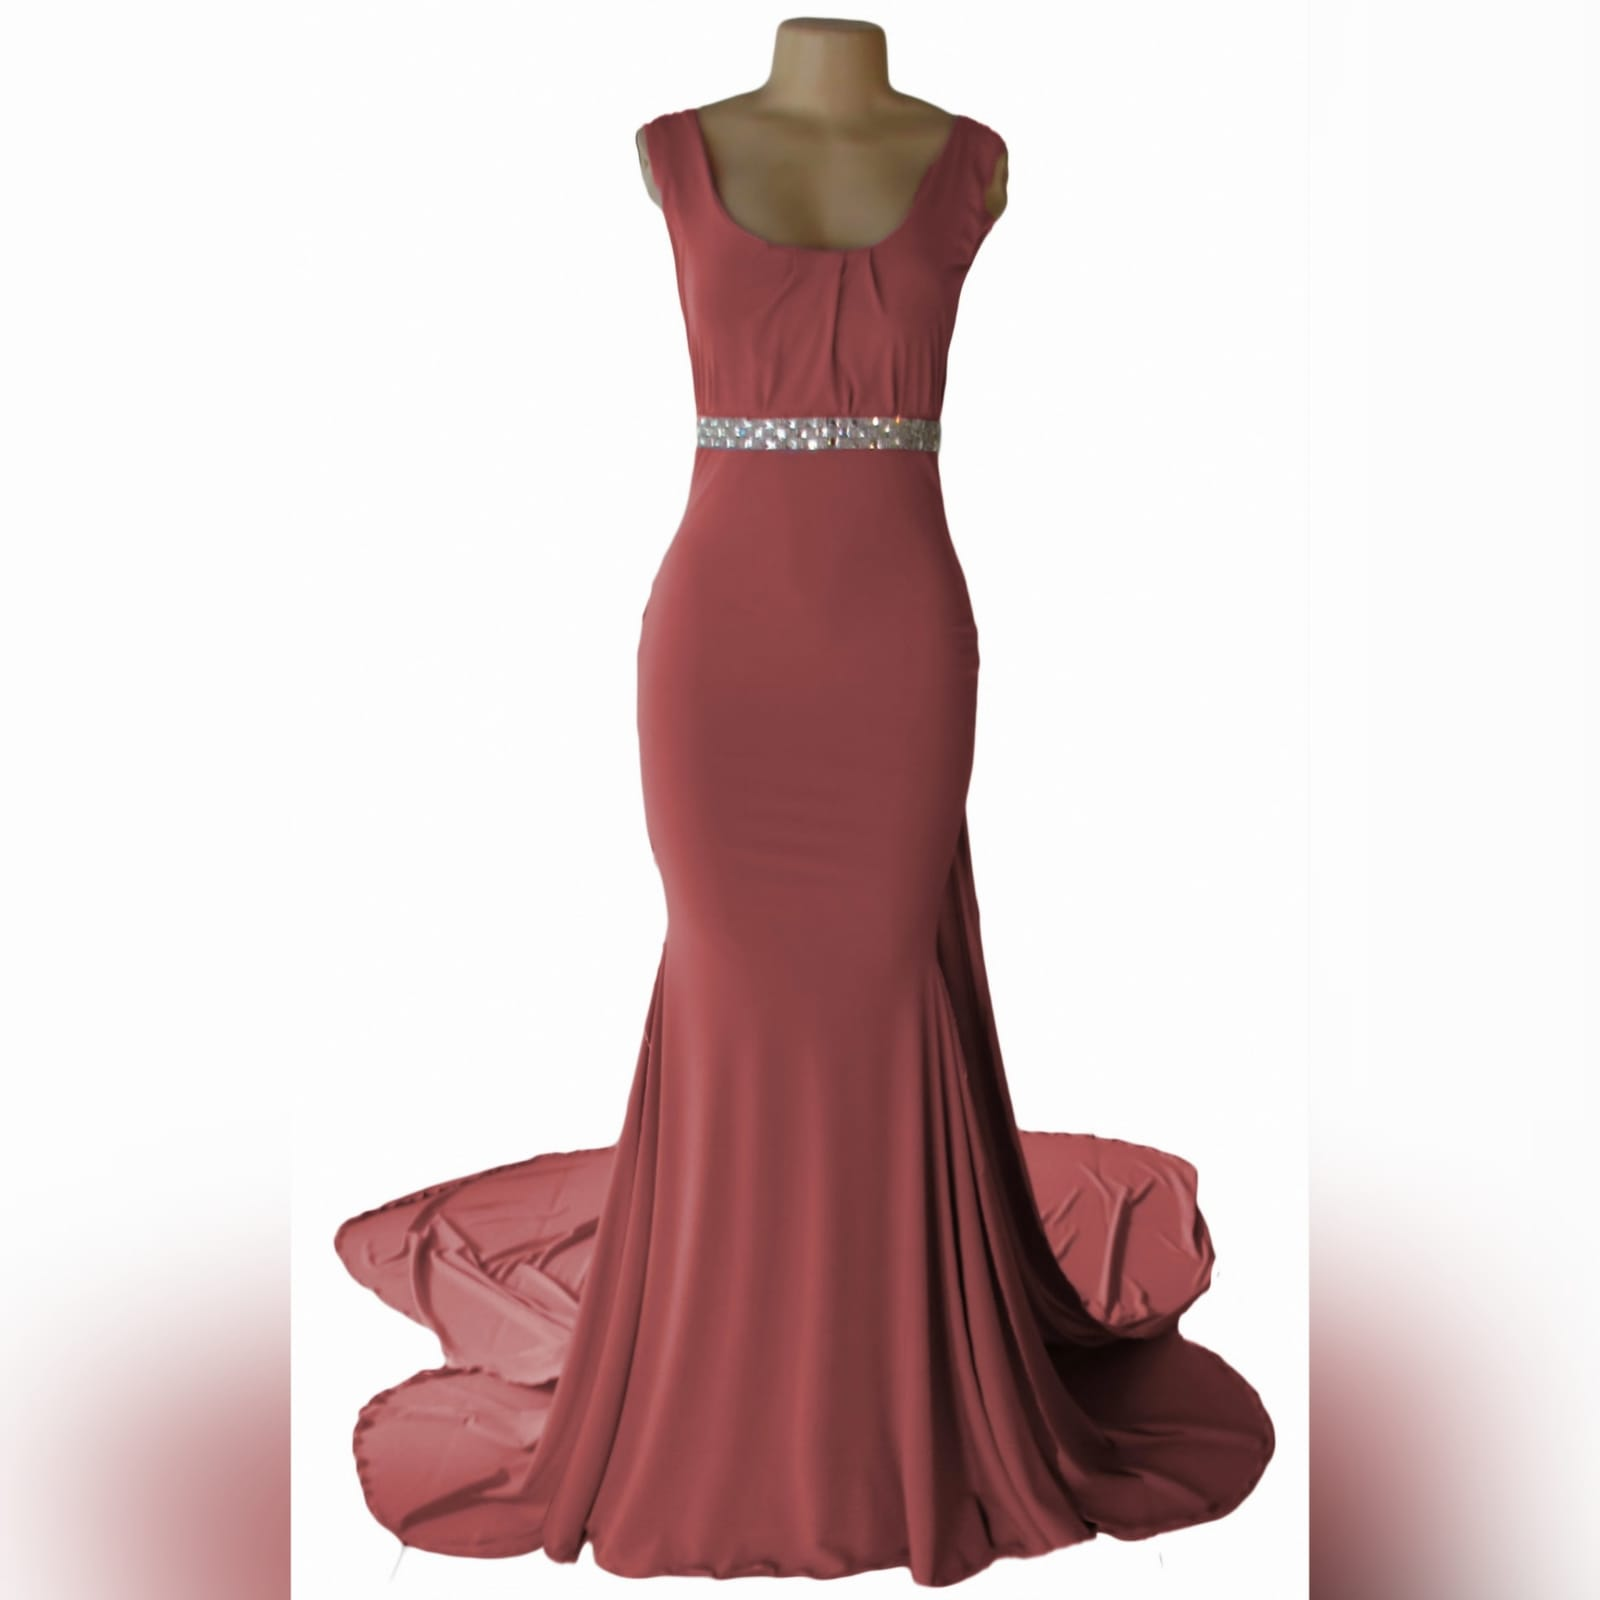 Dusty pink soft mermaid formal dress 3 this dusty pink soft mermaid formal dress was specially made for a prom dance. With a slight gather on the bodice and a rounded neckline. Dress has a double train. The long train is attached to the beaded removable belt.